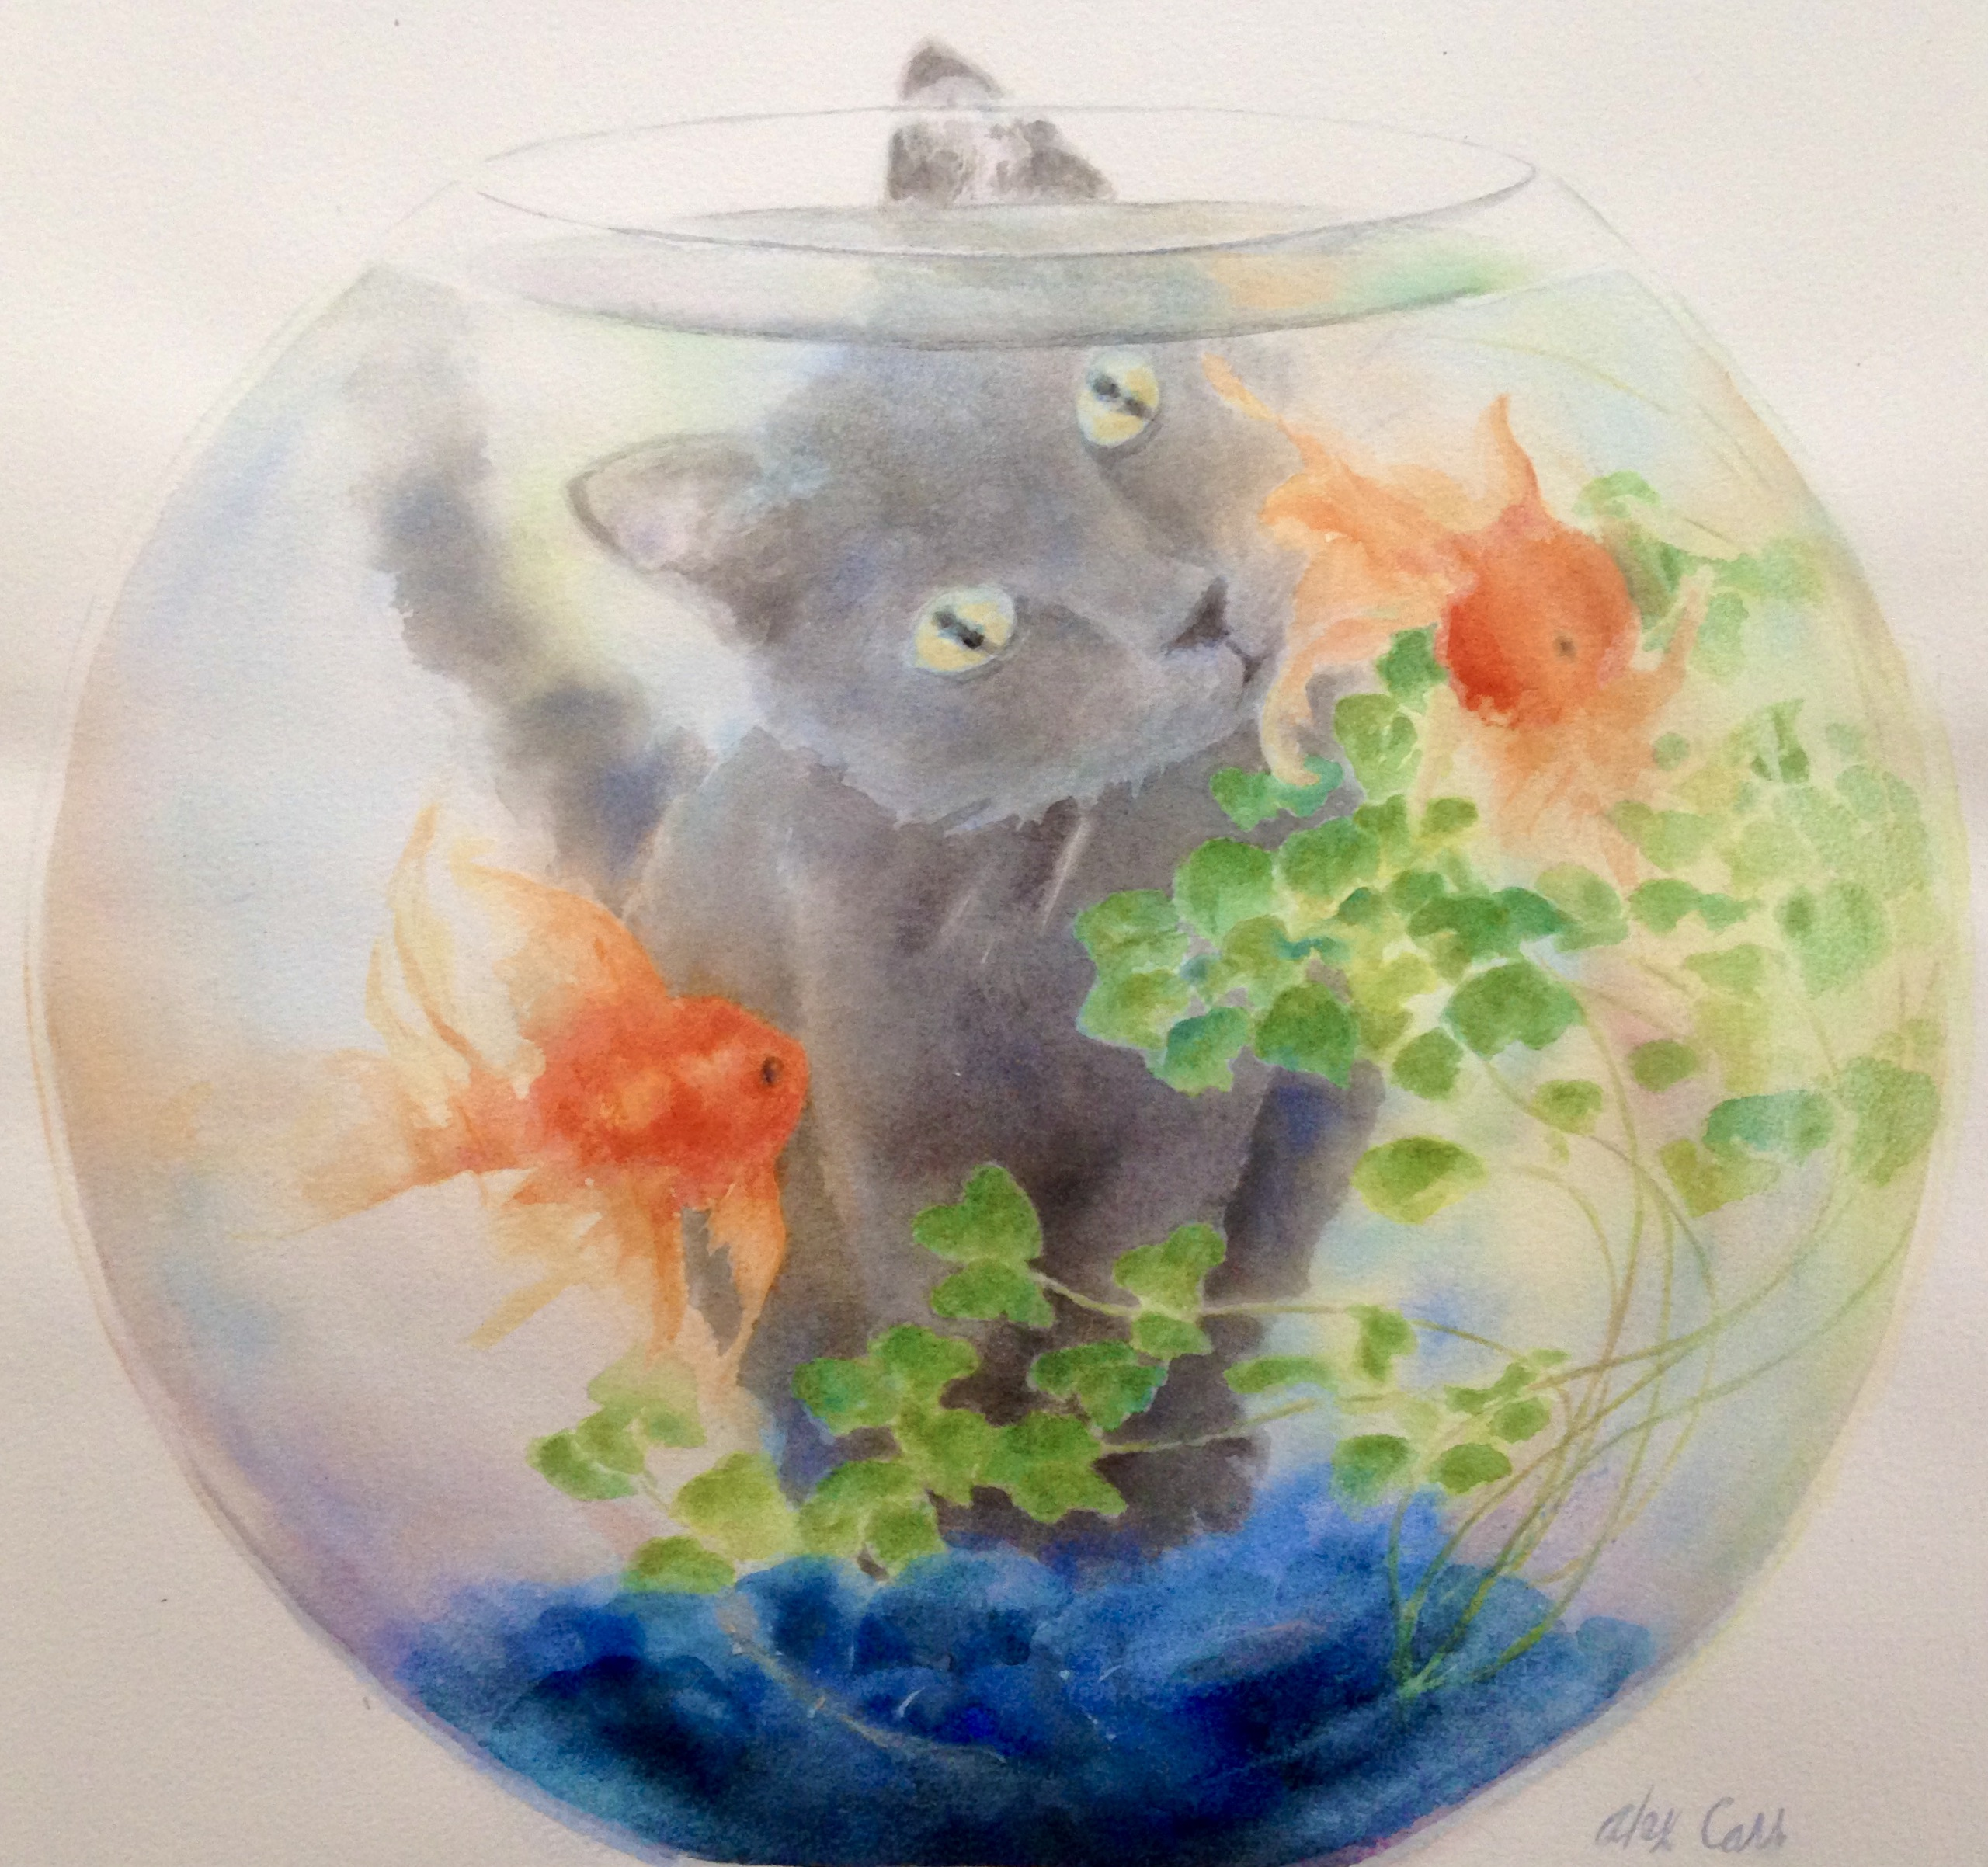 Mesmerized (goldfish bowl)